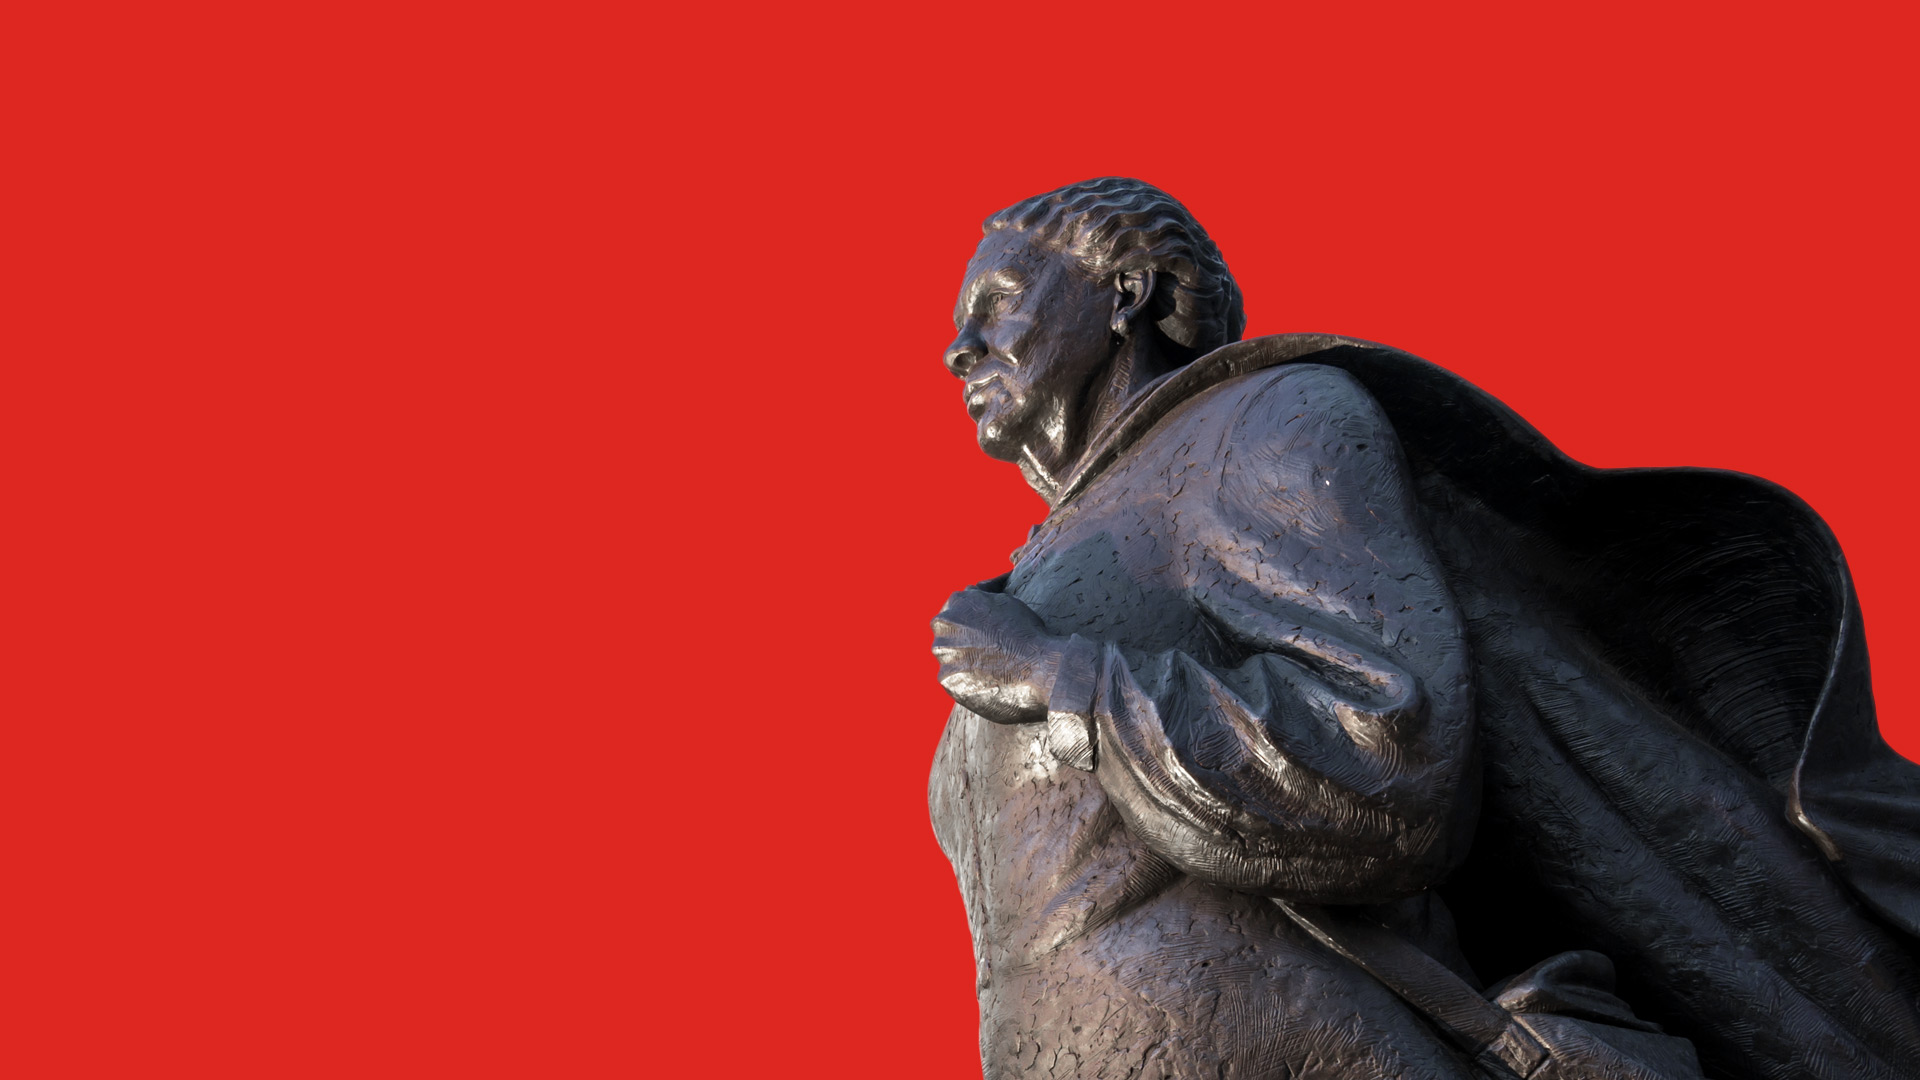 statue on red background